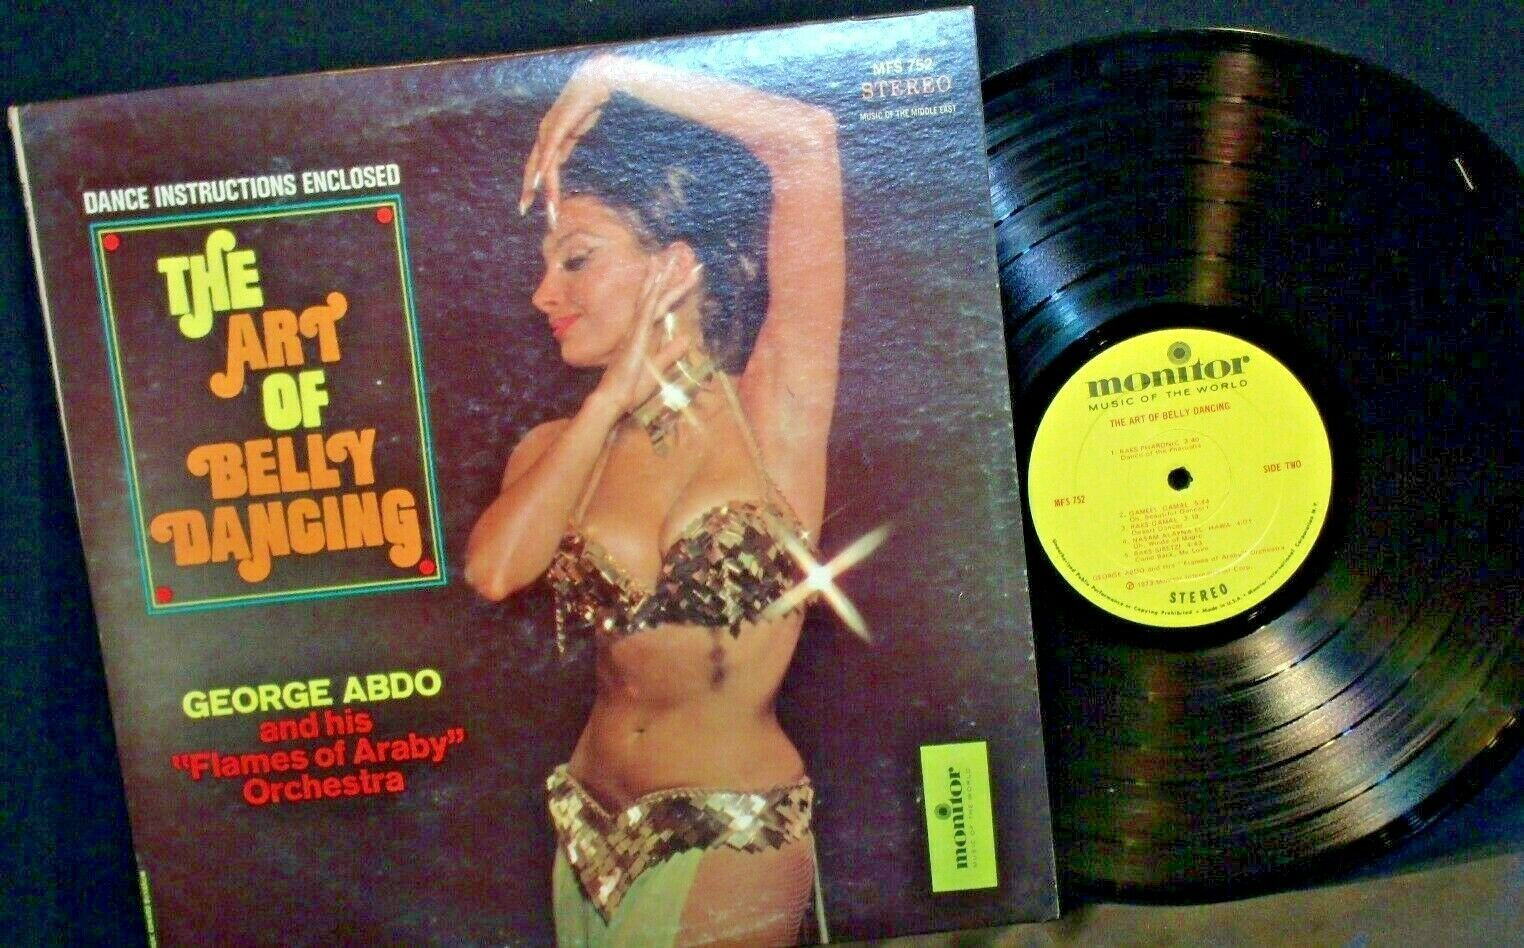 Art of Belly Dancing George abido and his Flames of Araby Orchestra MFS 752 Ster